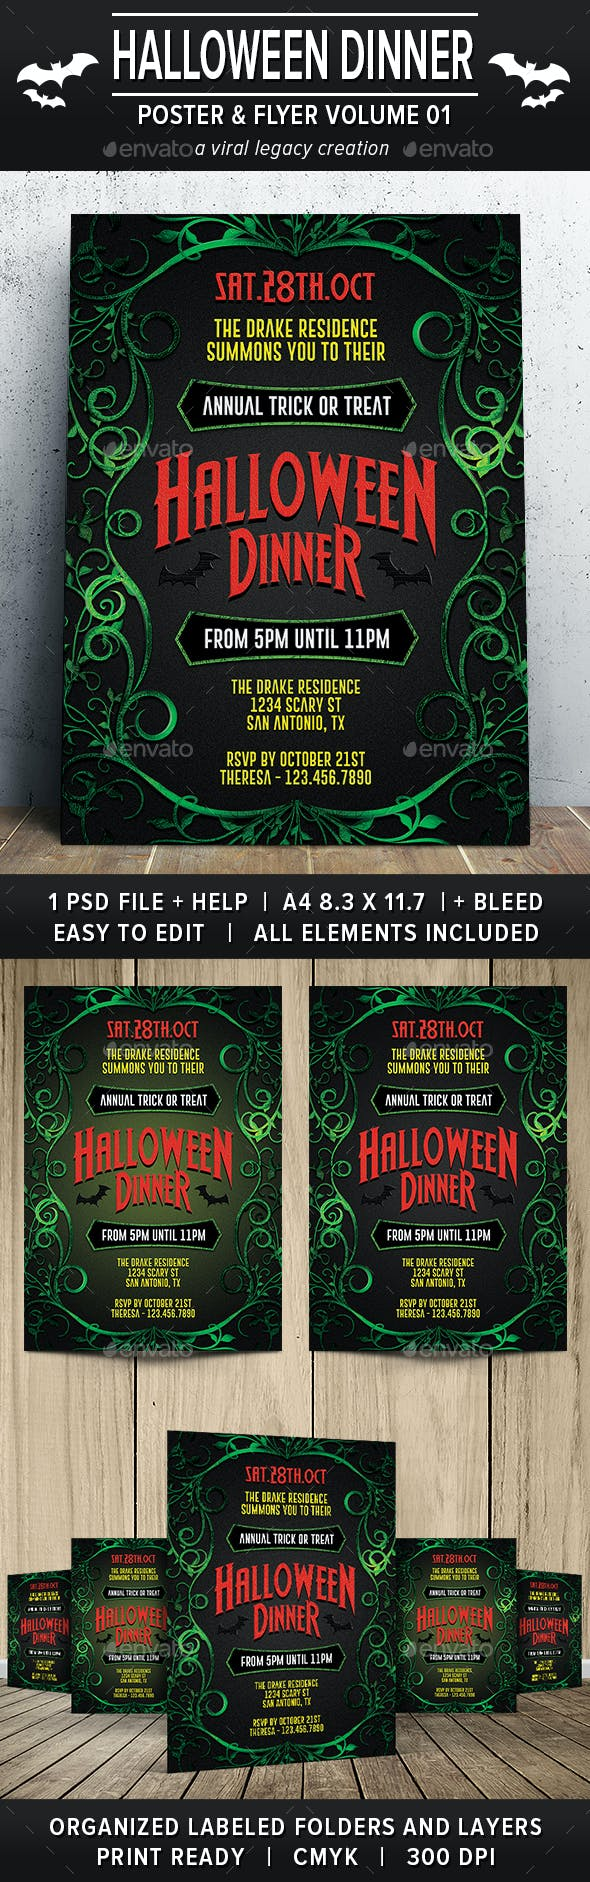 halloween dinner party poster flyer v01 by viral legacy graphicriver